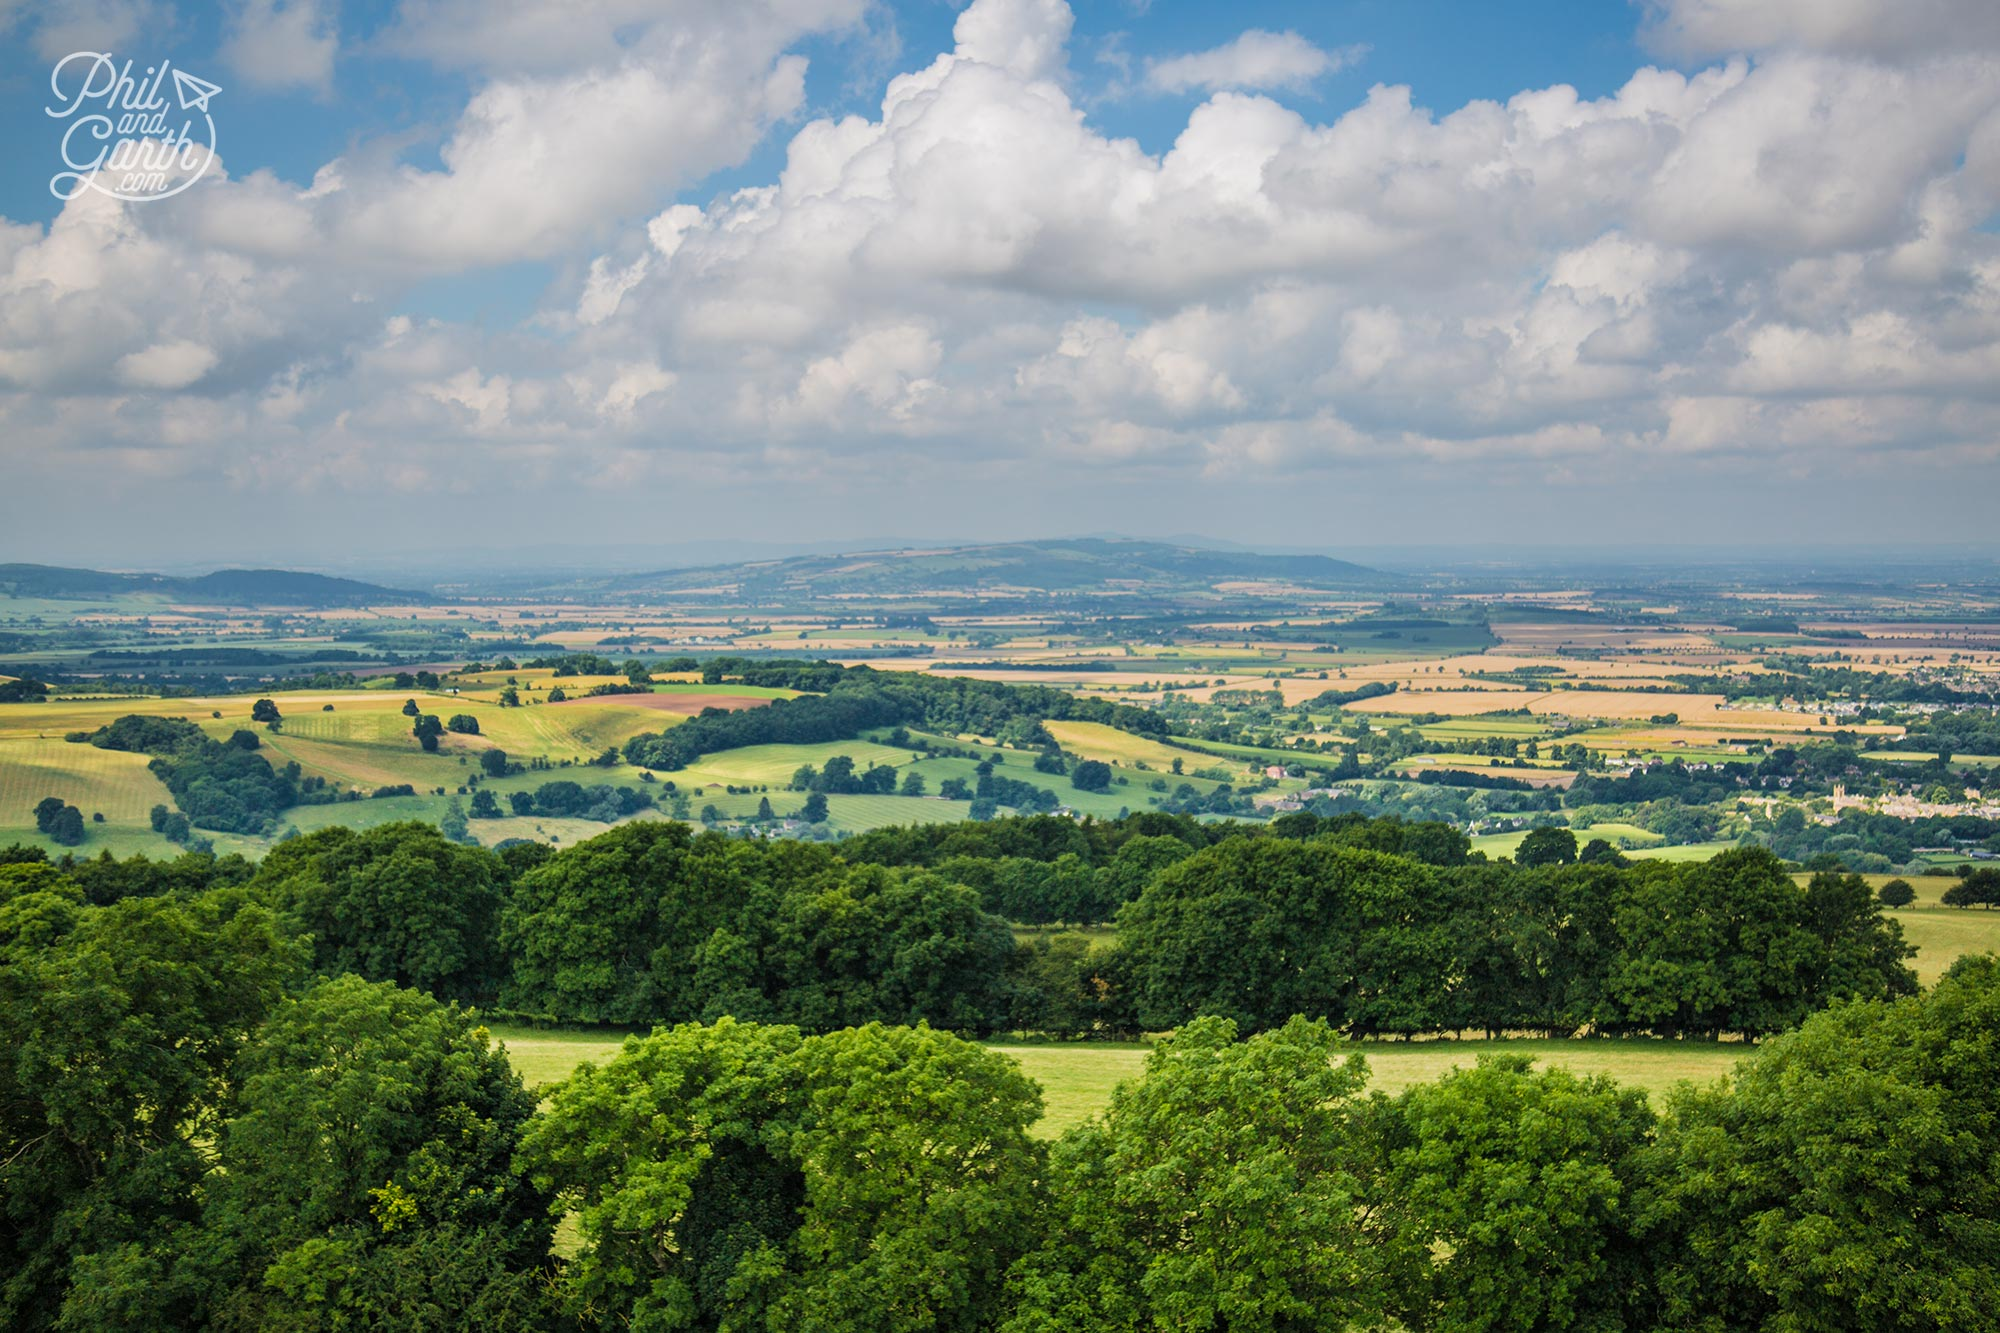 The rolling hills of the Cotswolds